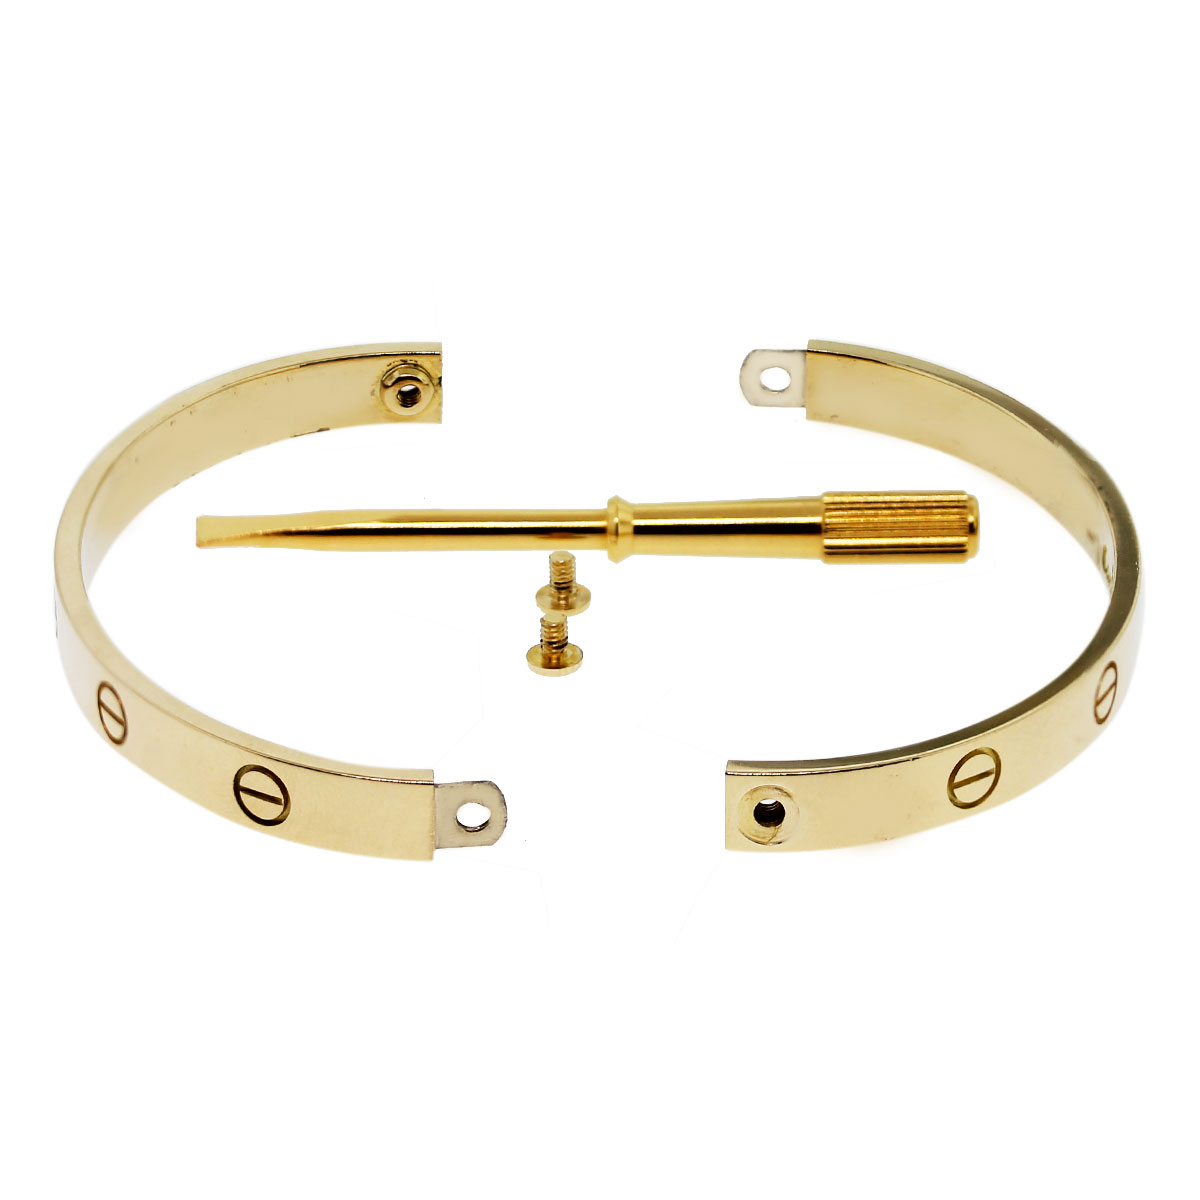 Cartier 18k Yellow Gold LOVE Bracelet Bangle Size 18